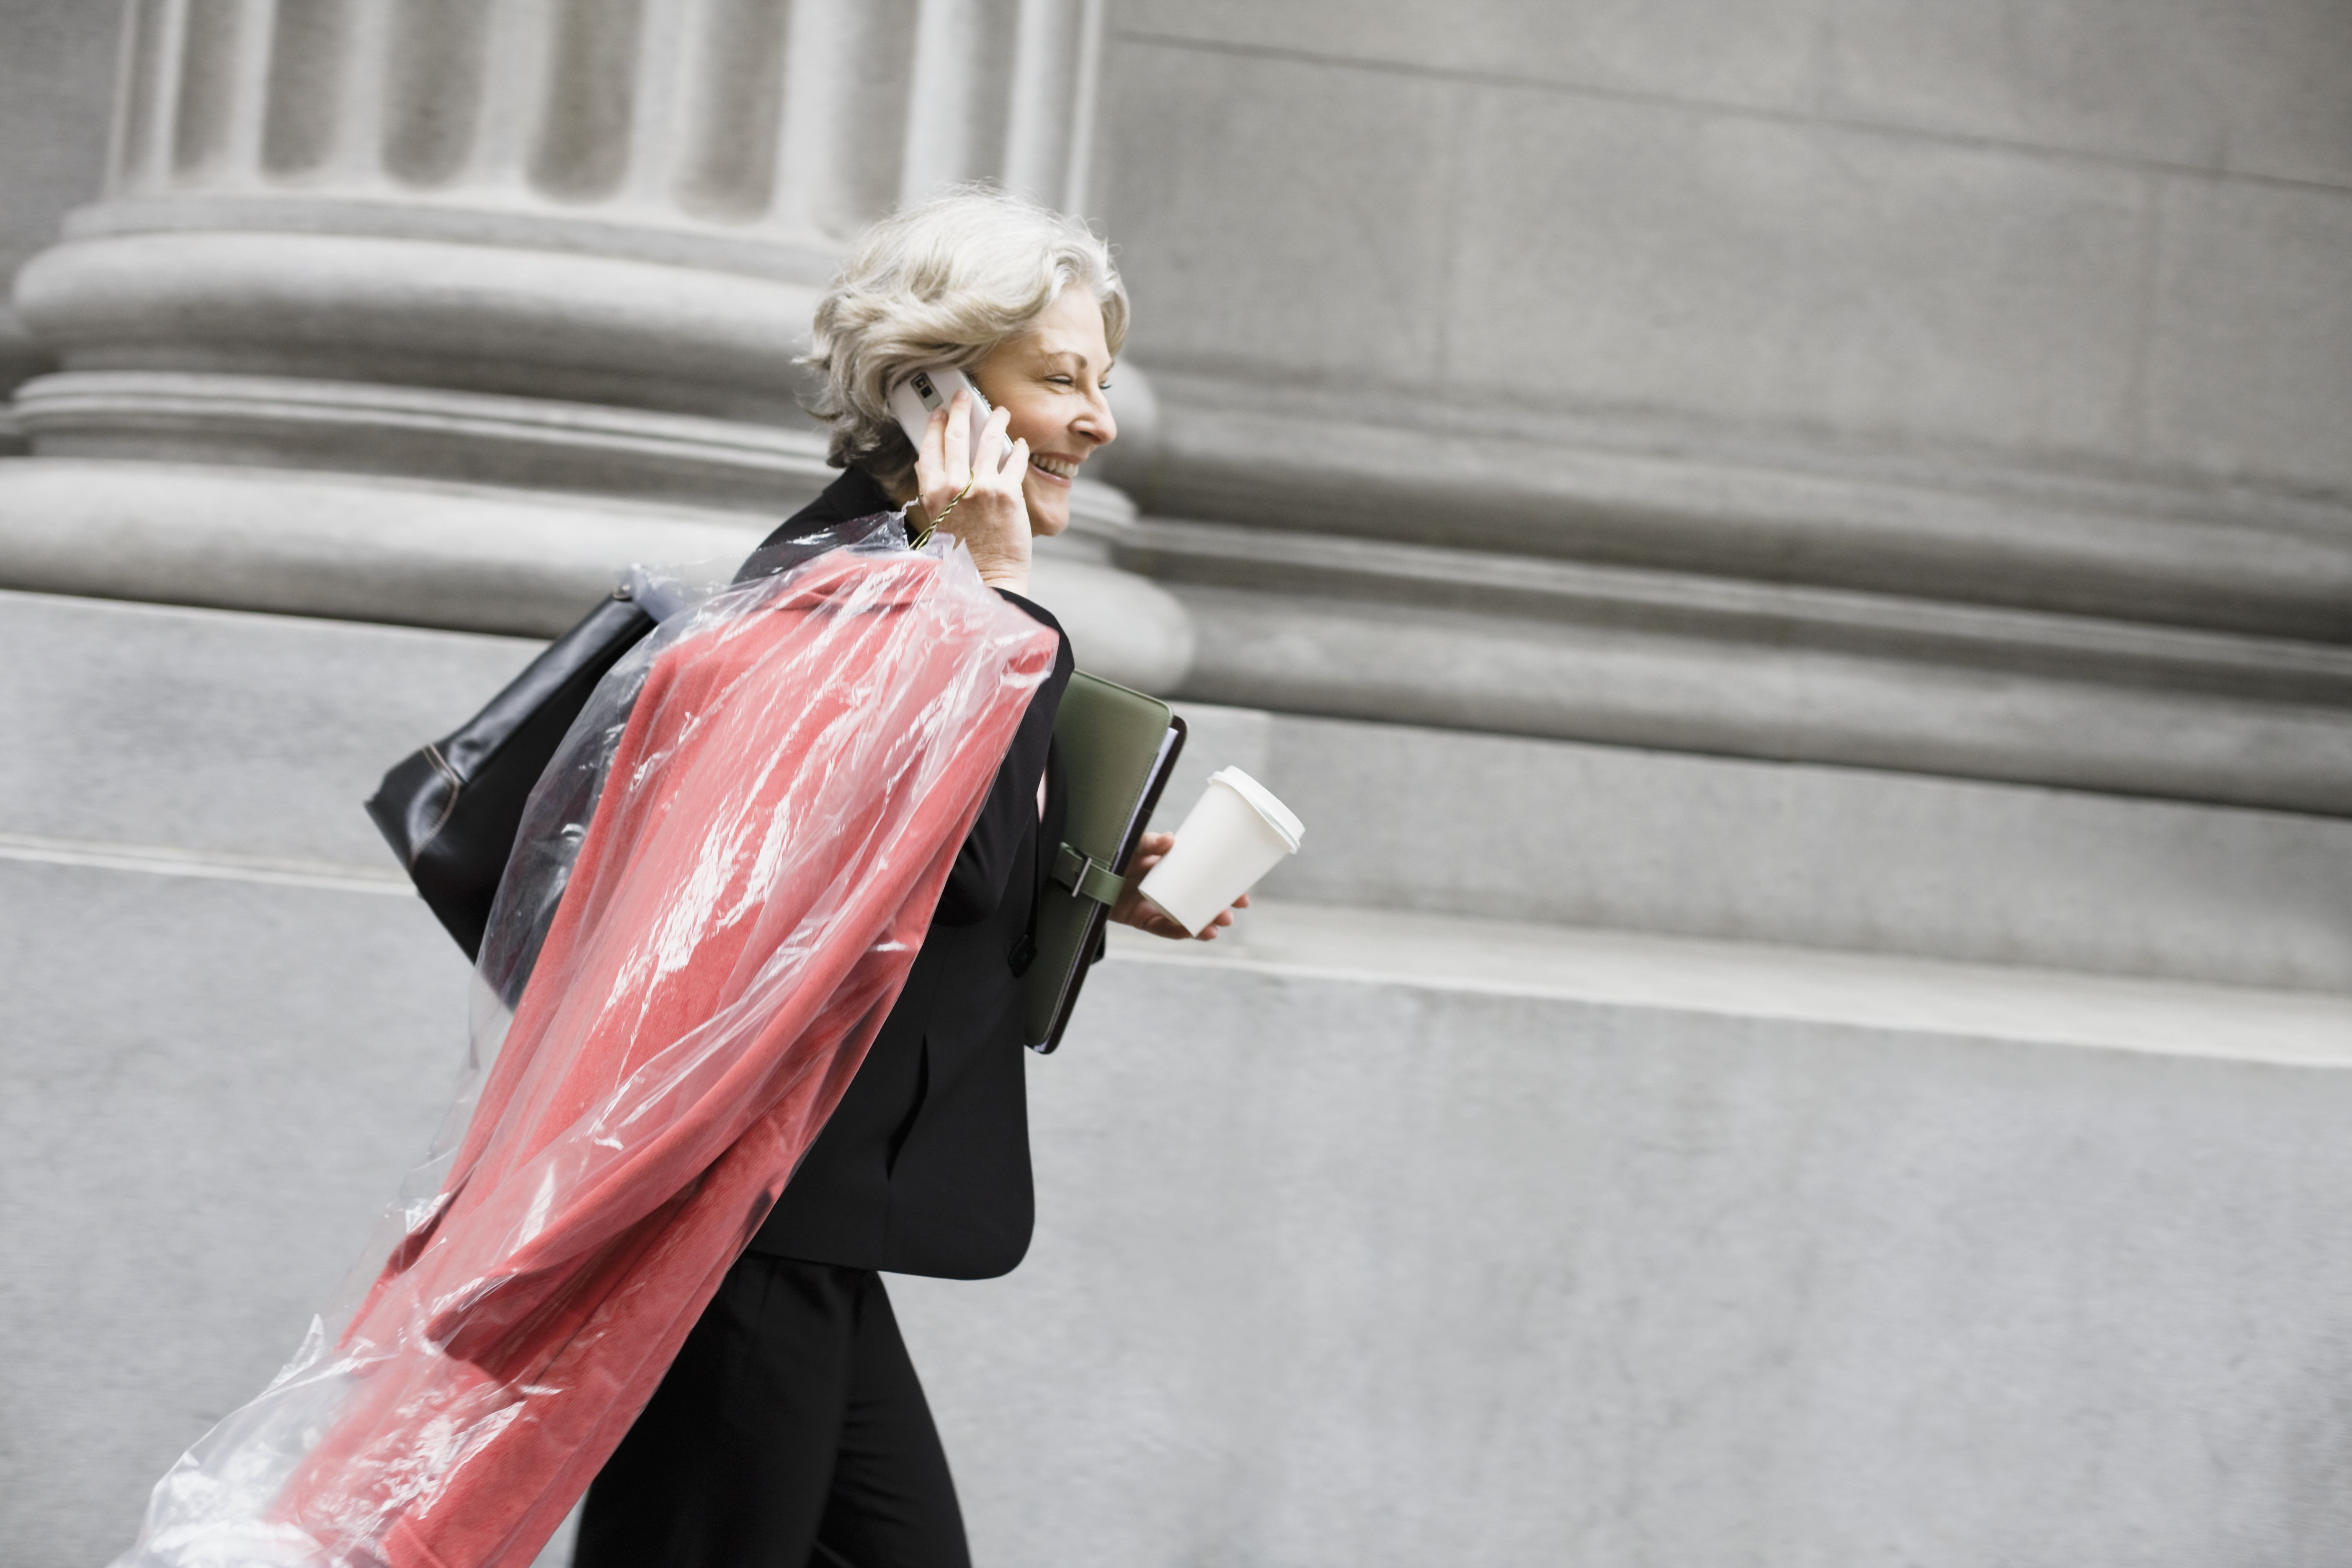 Woman with Dry Cleaning